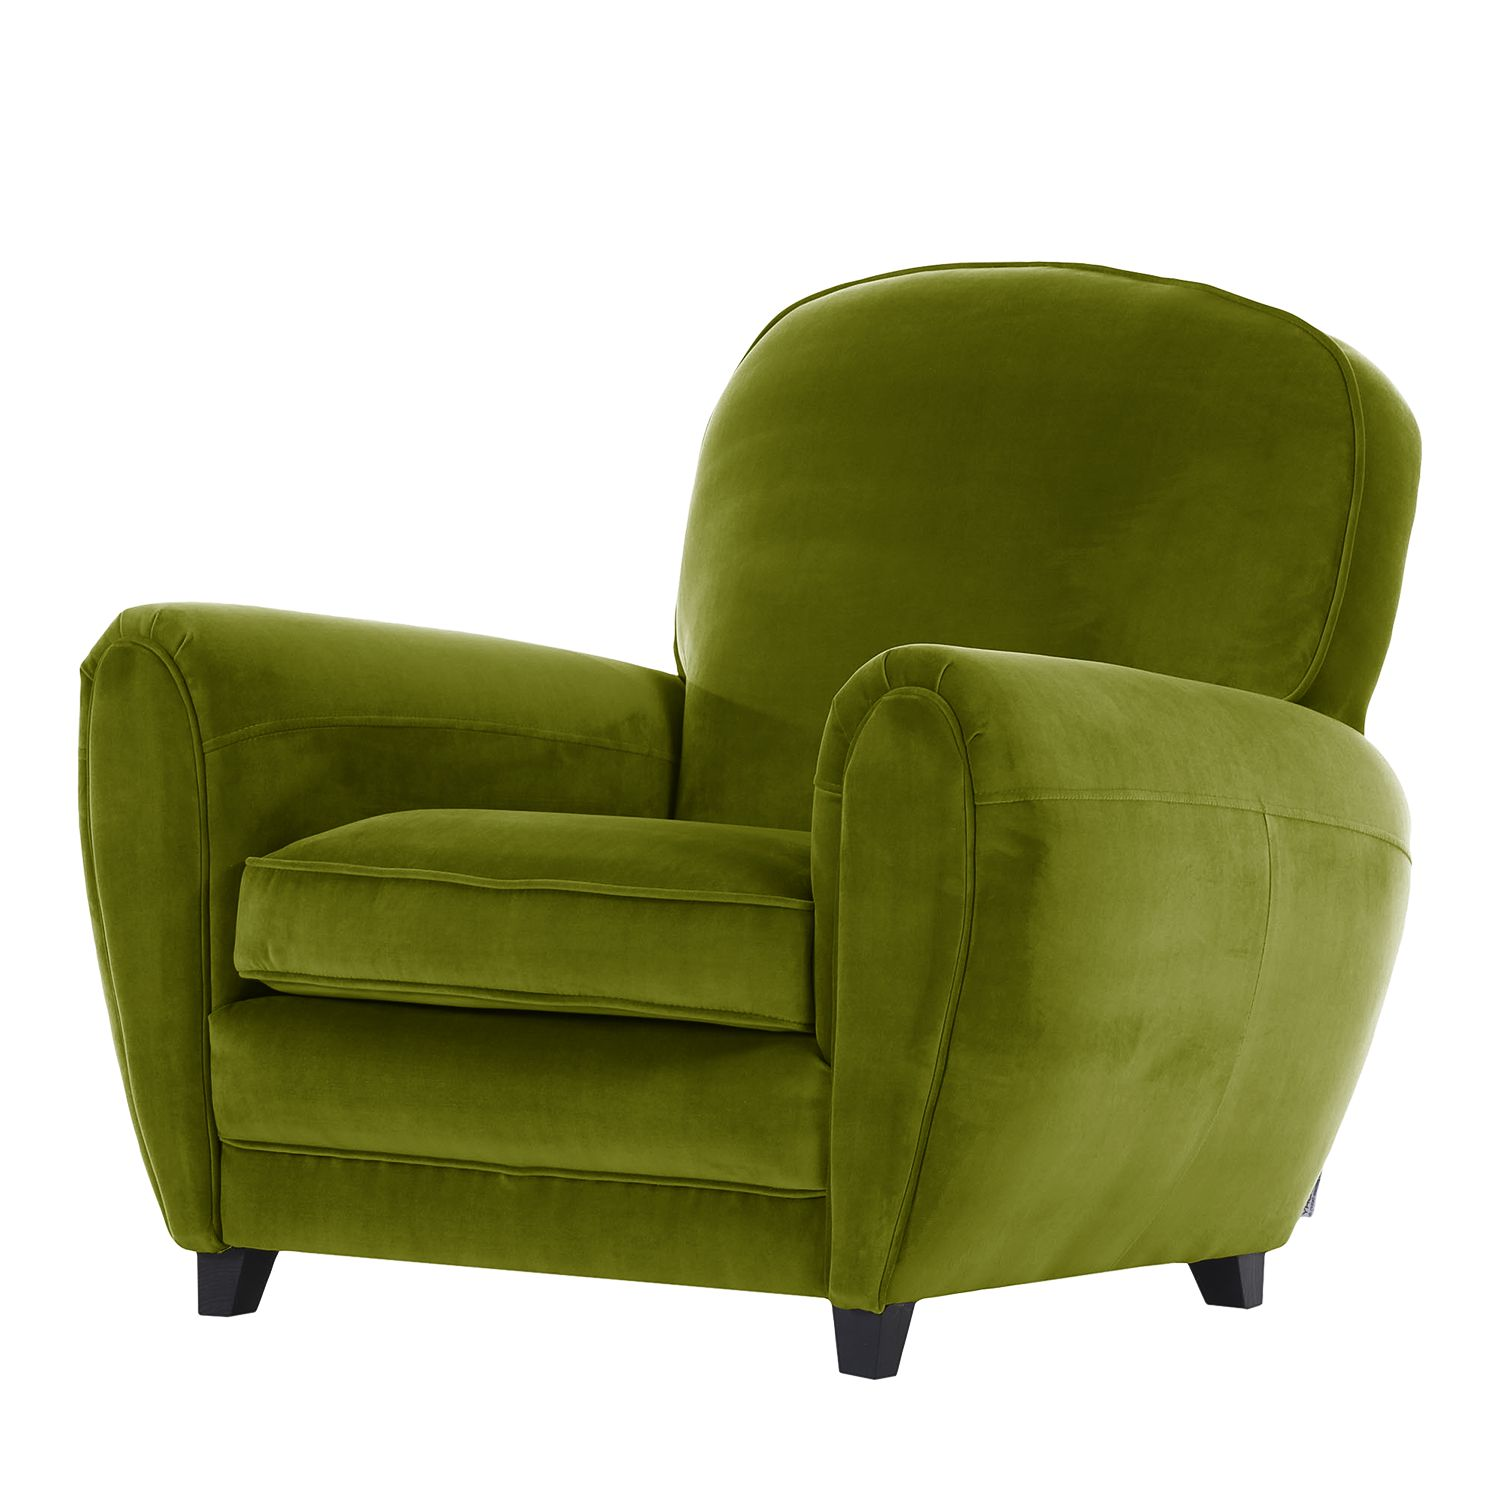 Fauteuil Marre Microfibre - Avocat cannelure fine, Jack and Alice